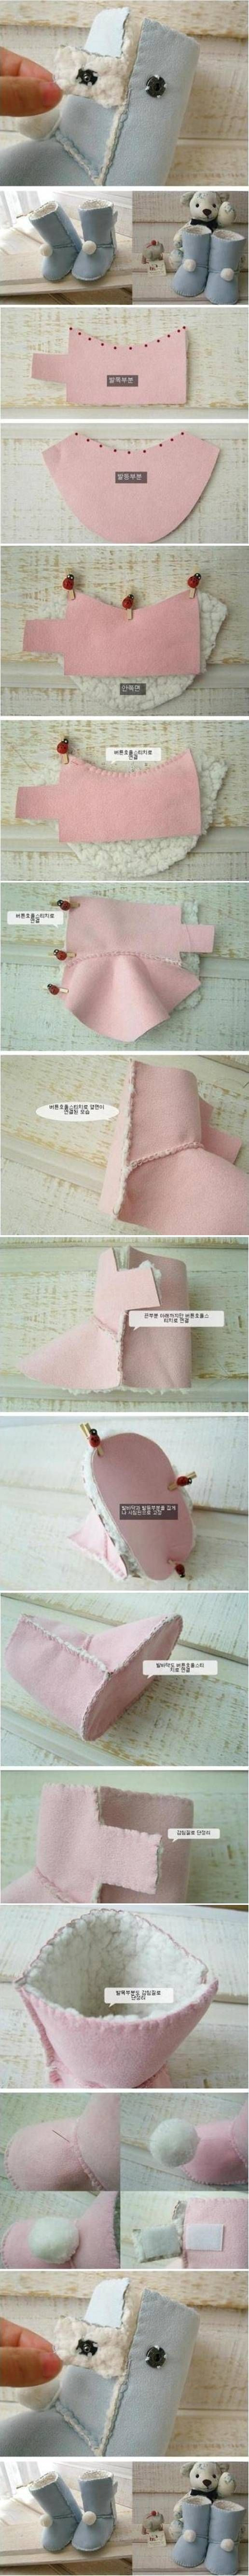 DIY Kids Ugg Boots DIY Projects | UsefulDIY.com Follow Us on Facebook ==> http://www.facebook.com/UsefulDiy